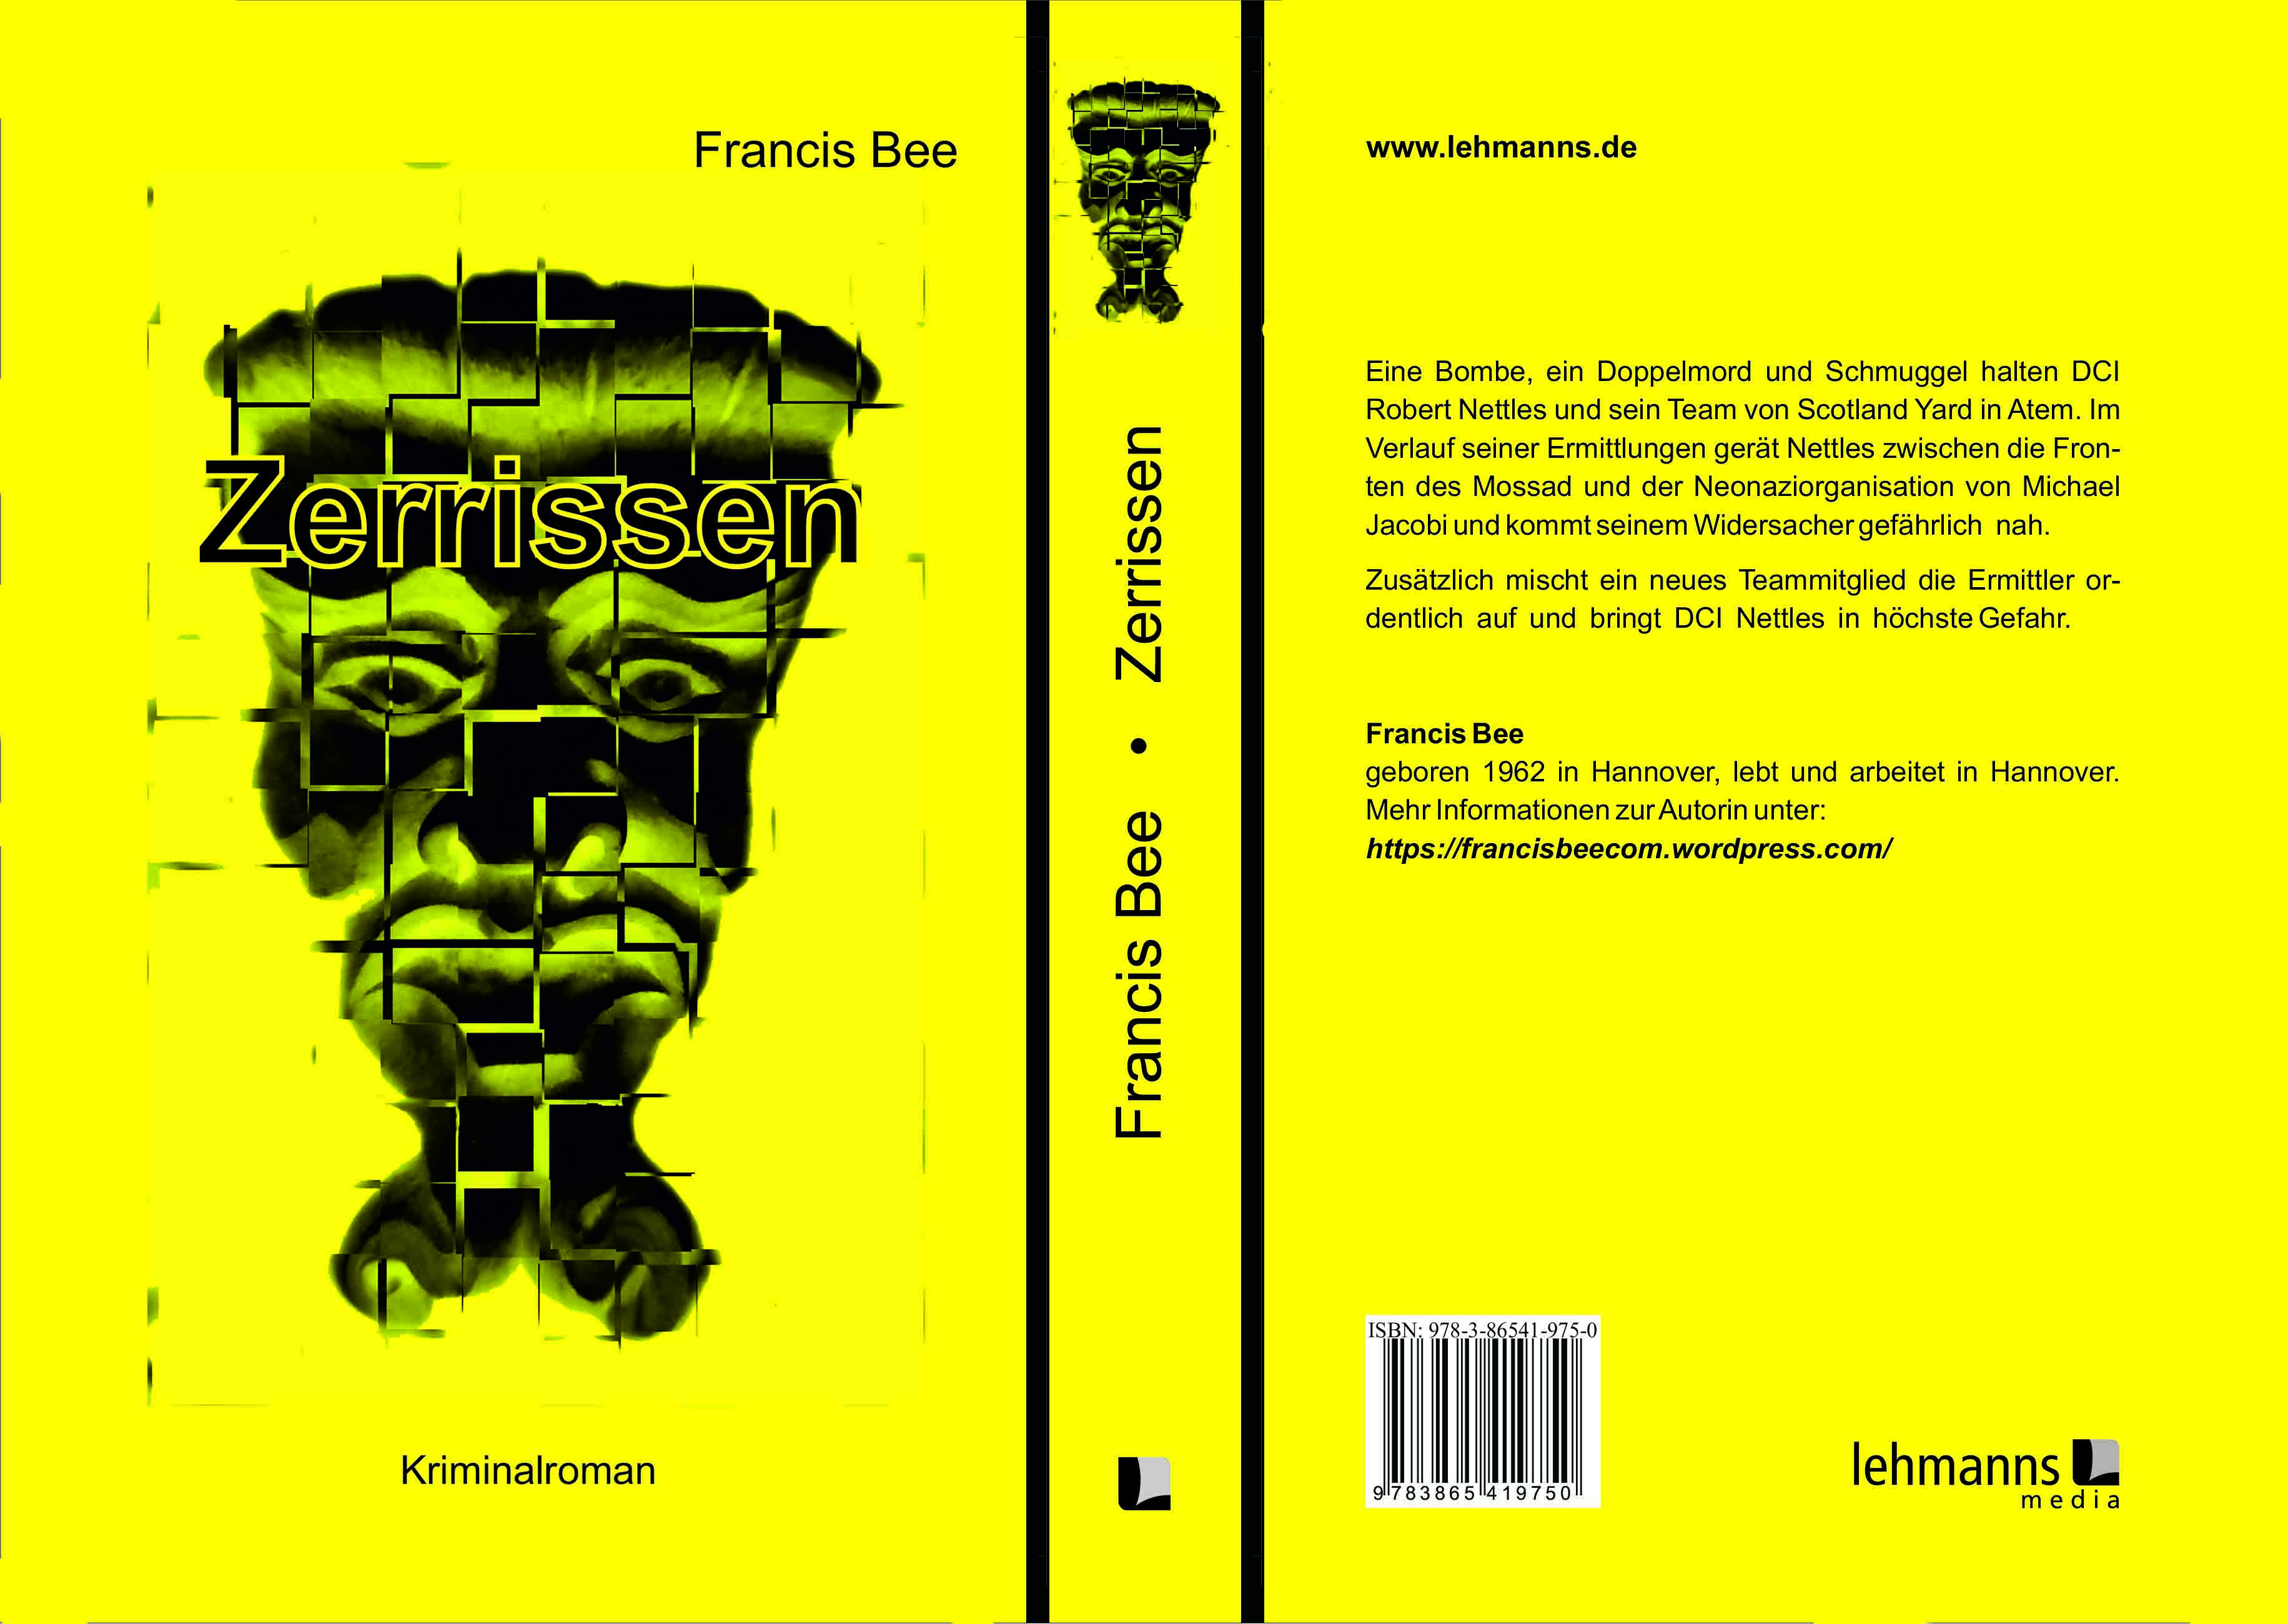 Cover_Bee_Zerrissen_05.cdr